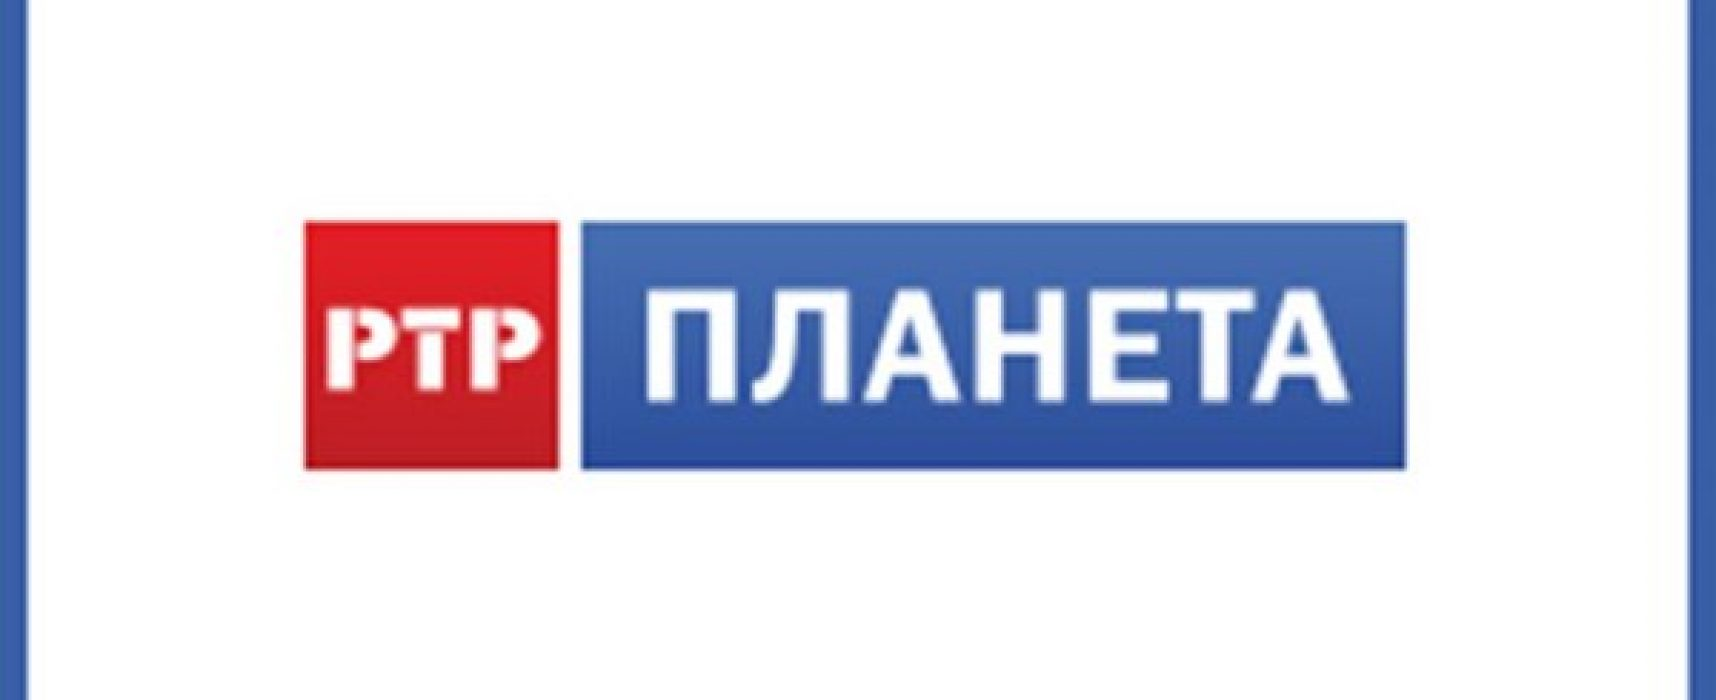 Russian TV Channel is facing restrictions on broadcasting in Lithuania